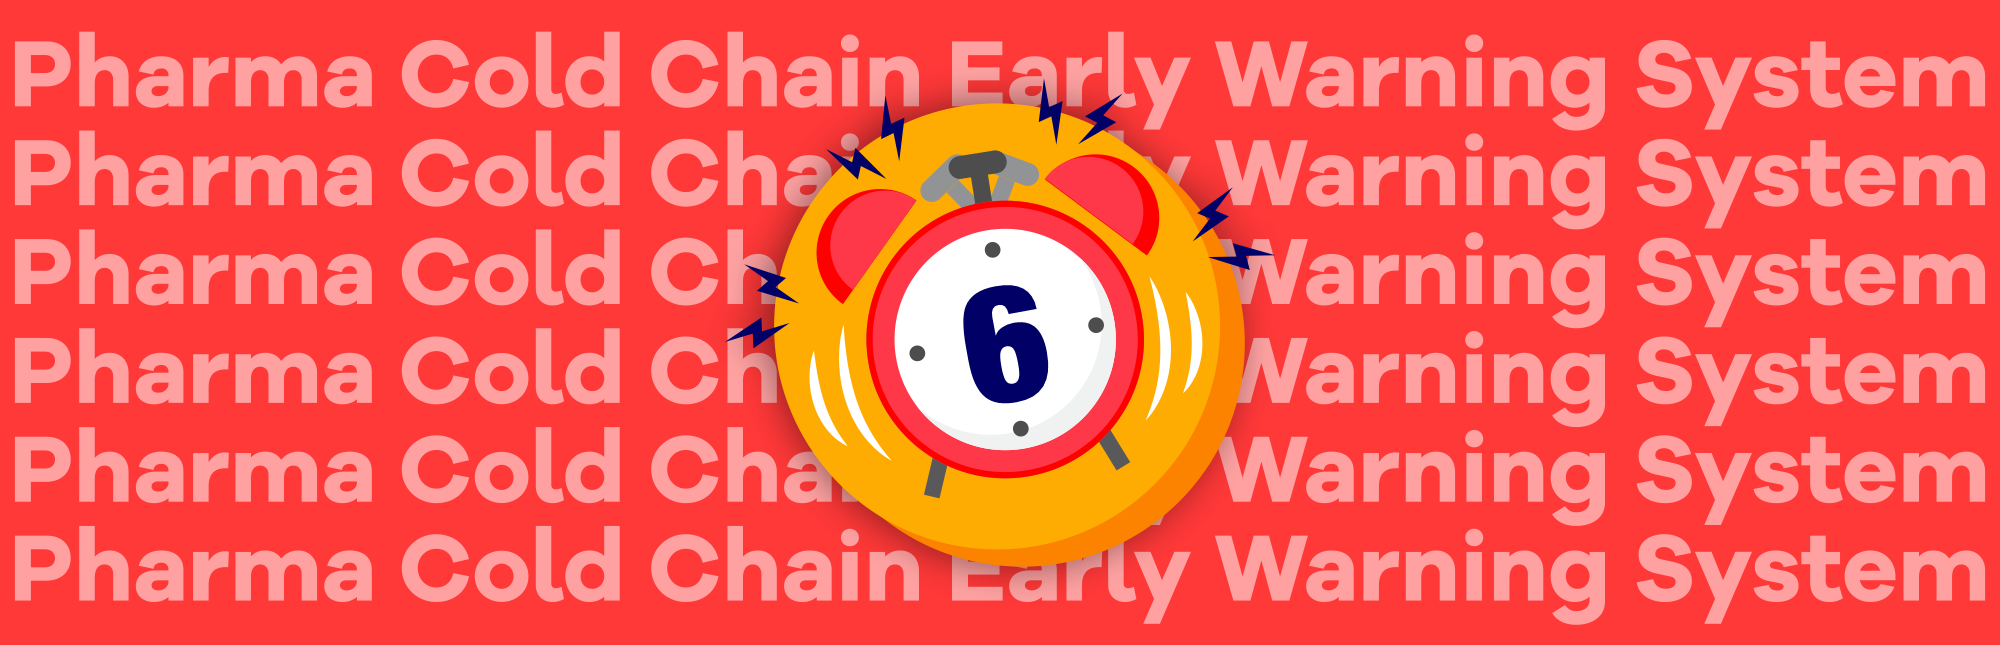 6 Essentials of a Pharma Cold Chain Early Warning System